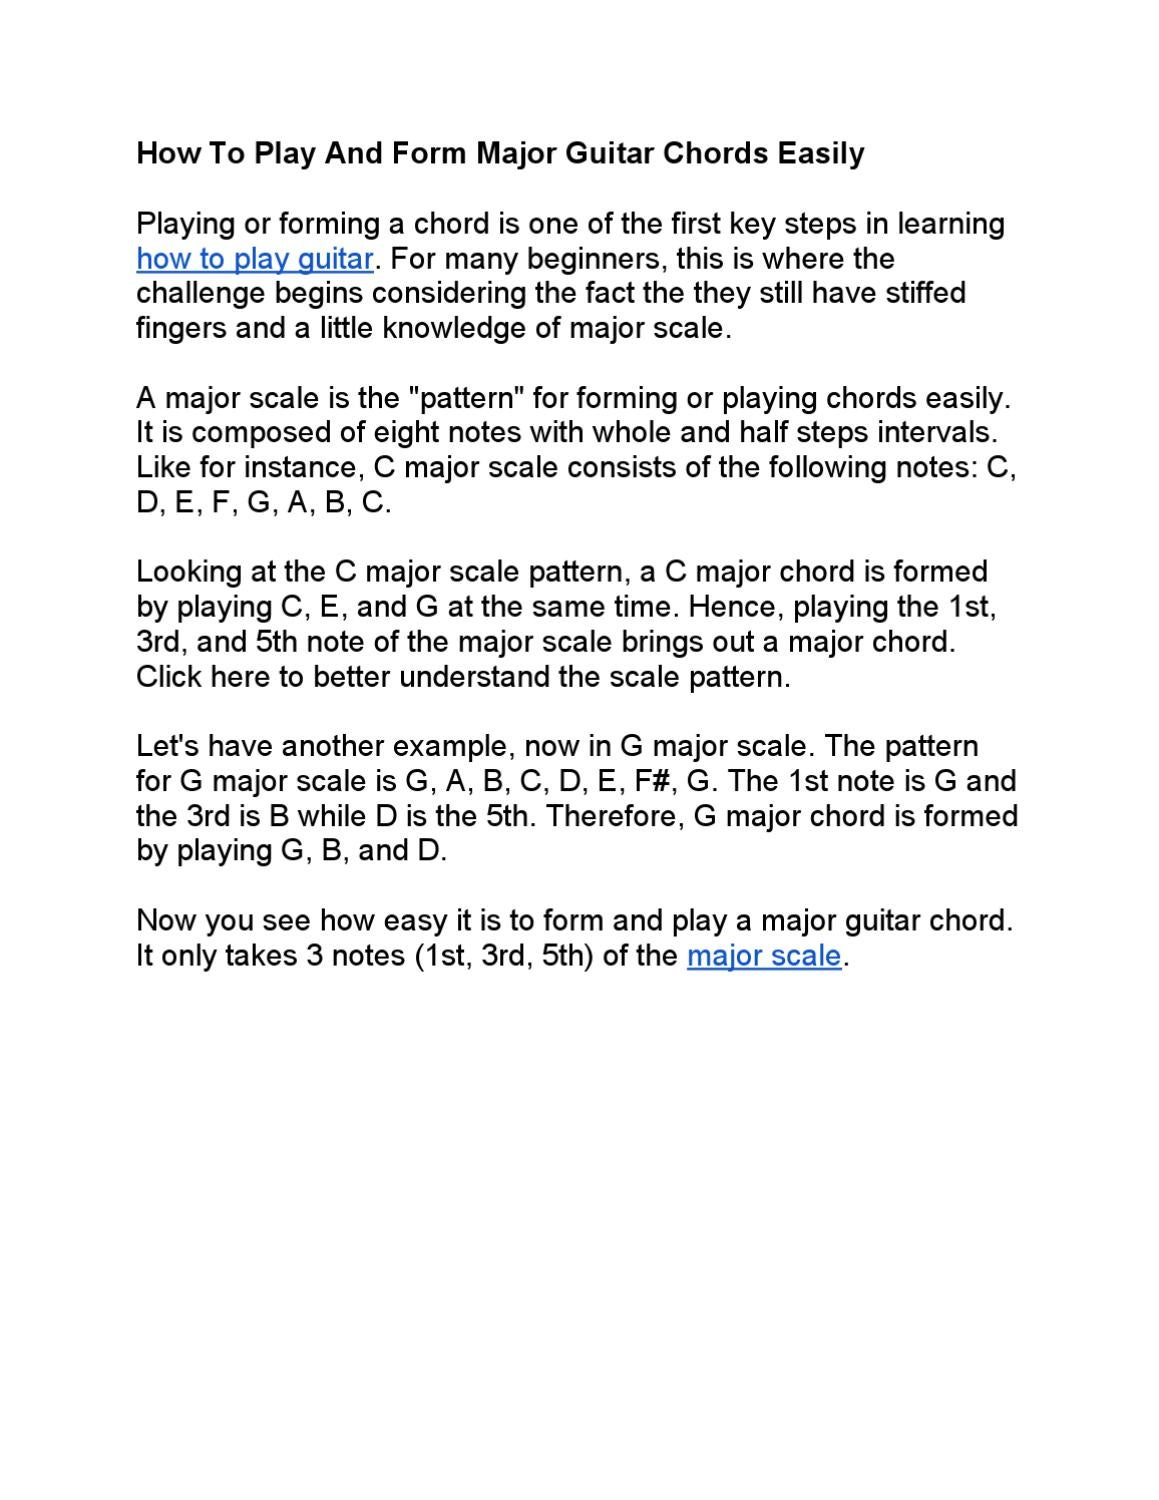 How To Form And Play Guitar Chords By Jim Cyncad Issuu